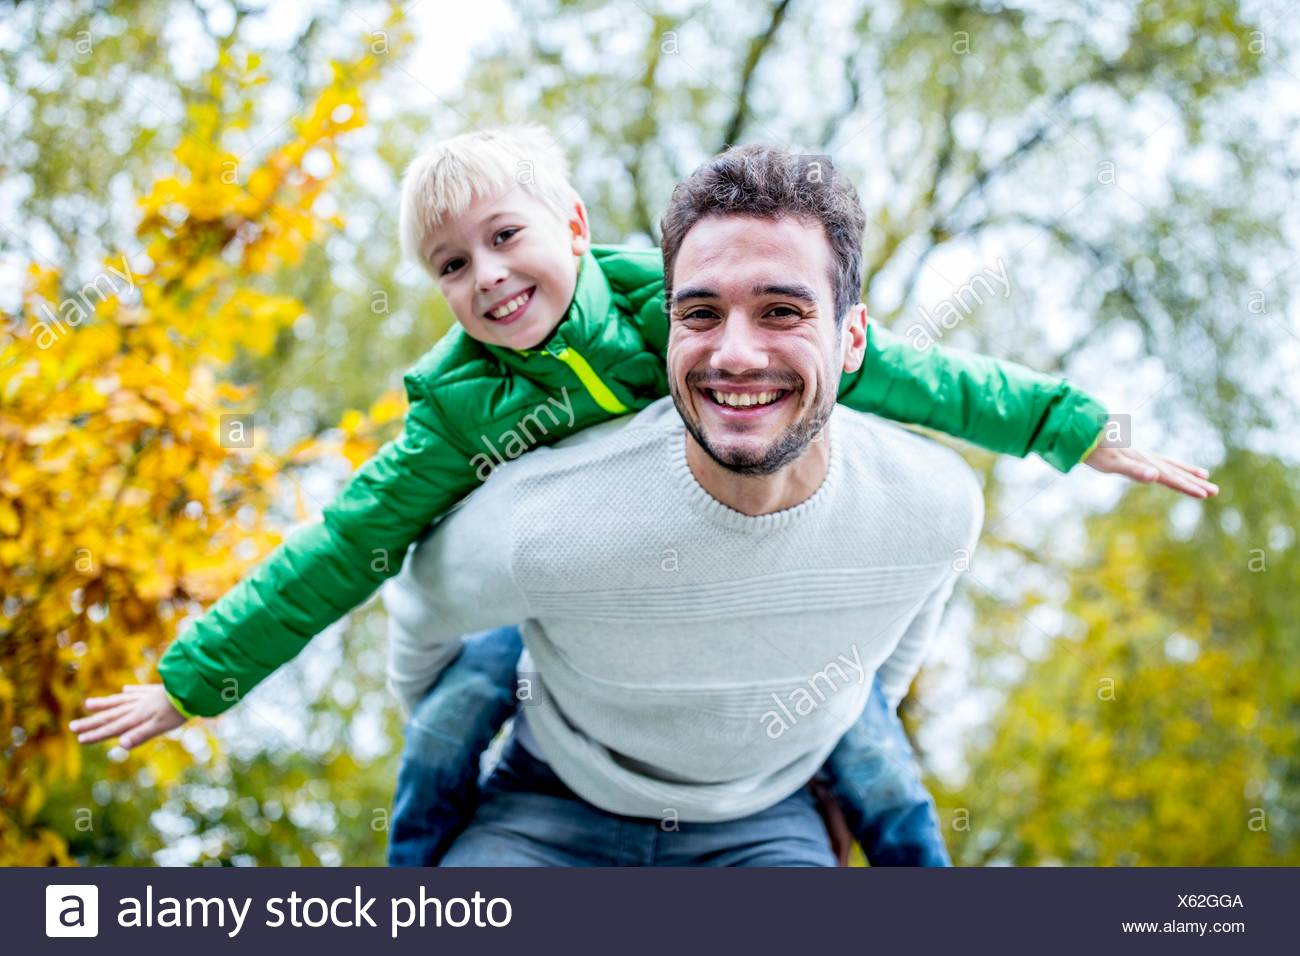 MODEL RELEASED. Father carrying son piggyback in autumn, smiling, portrait. - Stock Image